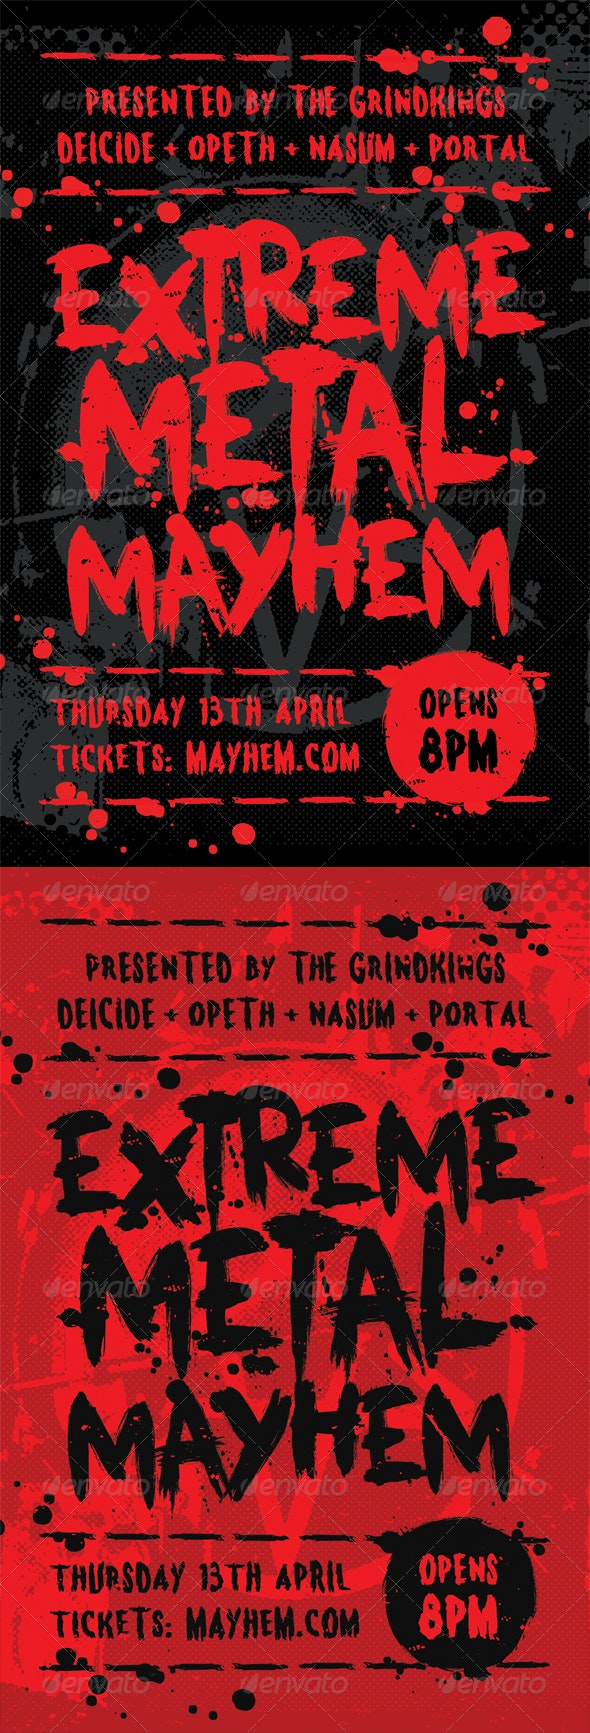 Mayhem - Heavy Metal Flyer Template - Concerts Events